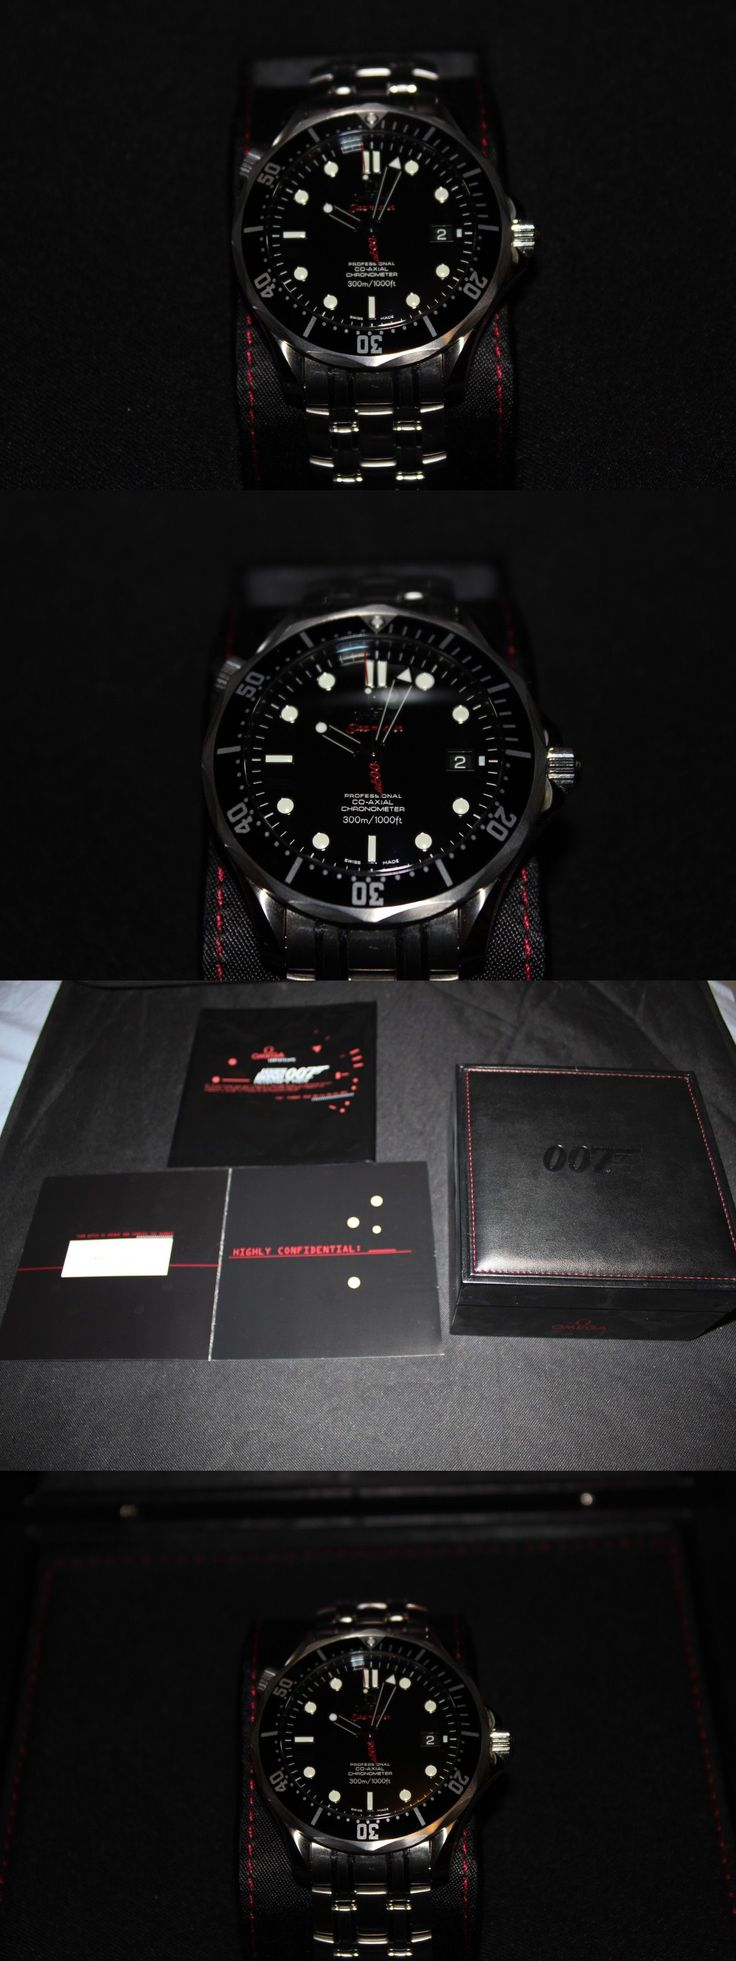 Other Watch Parts and Tools 180246: Omega James Bond Seamaster Limited Edition Quantum Of Solace -> BUY IT NOW ONLY: $4795 on eBay!